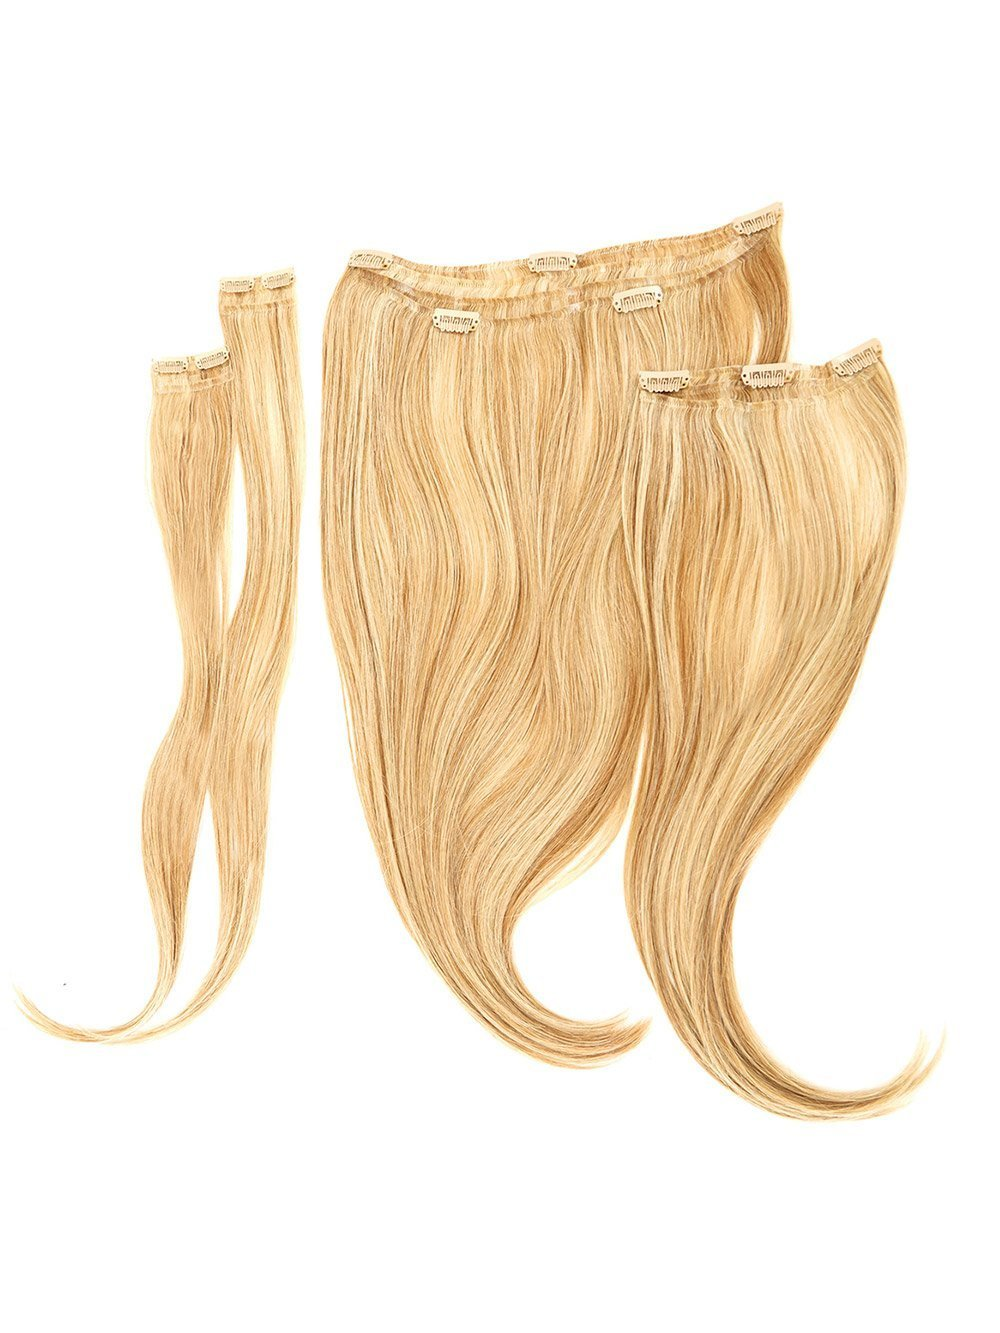 4 Pc Wavy Fineline Clip In Extensions By Hairdo 22 Inch Long